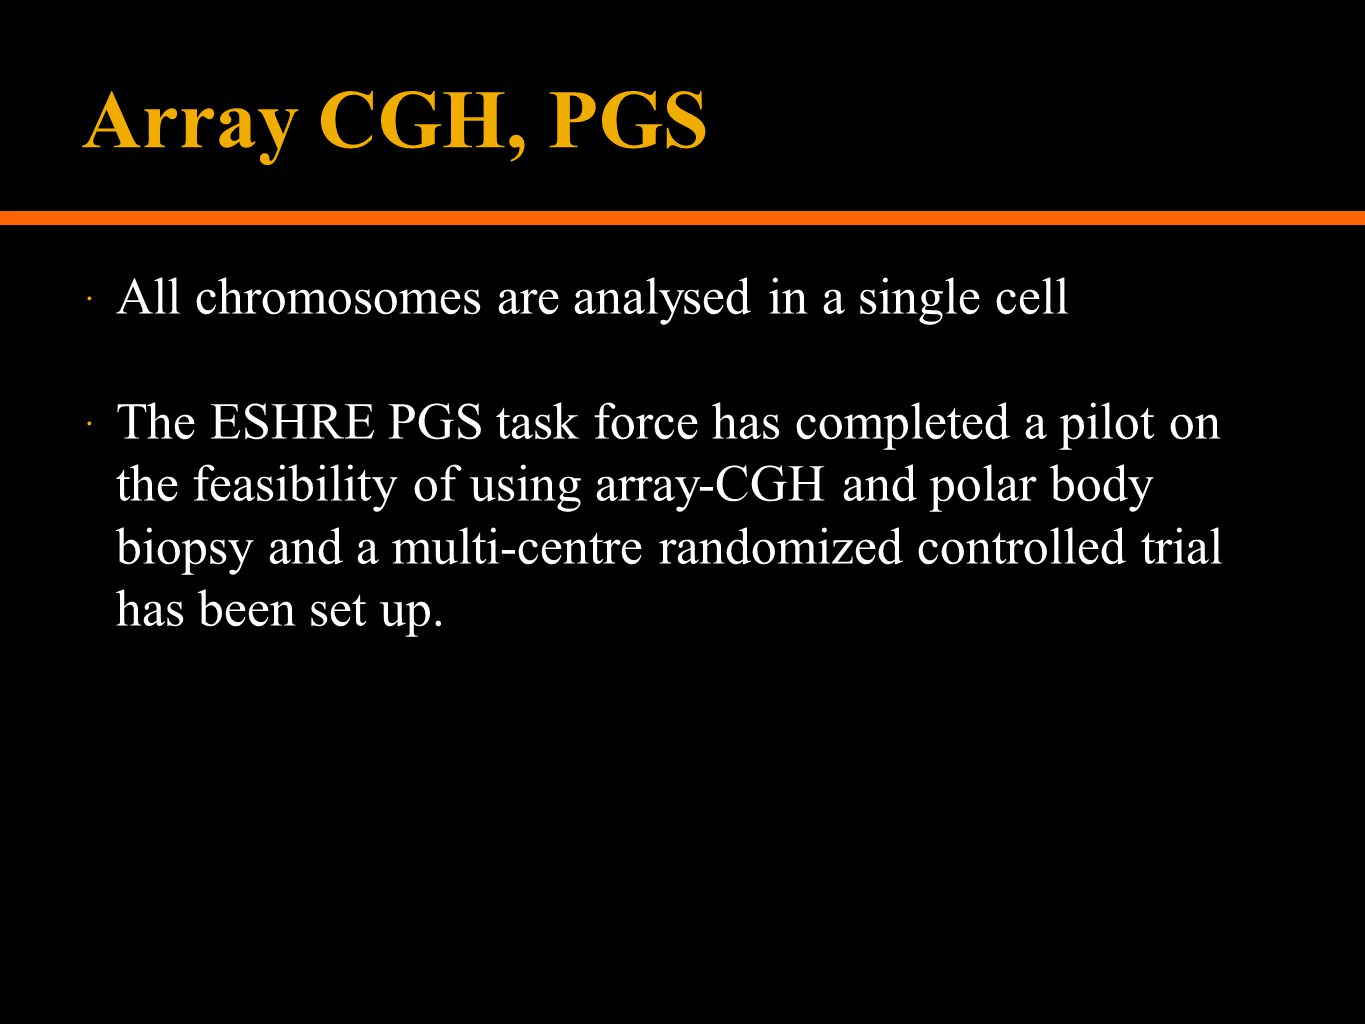 Array CGH, PGS  All chromosomes are analysed in a single cell  The ESHRE PGS task force has completed a pilot on the feasibility of using array-CGH and polar body biopsy and a multi-centre randomized controlled trial has been set up.